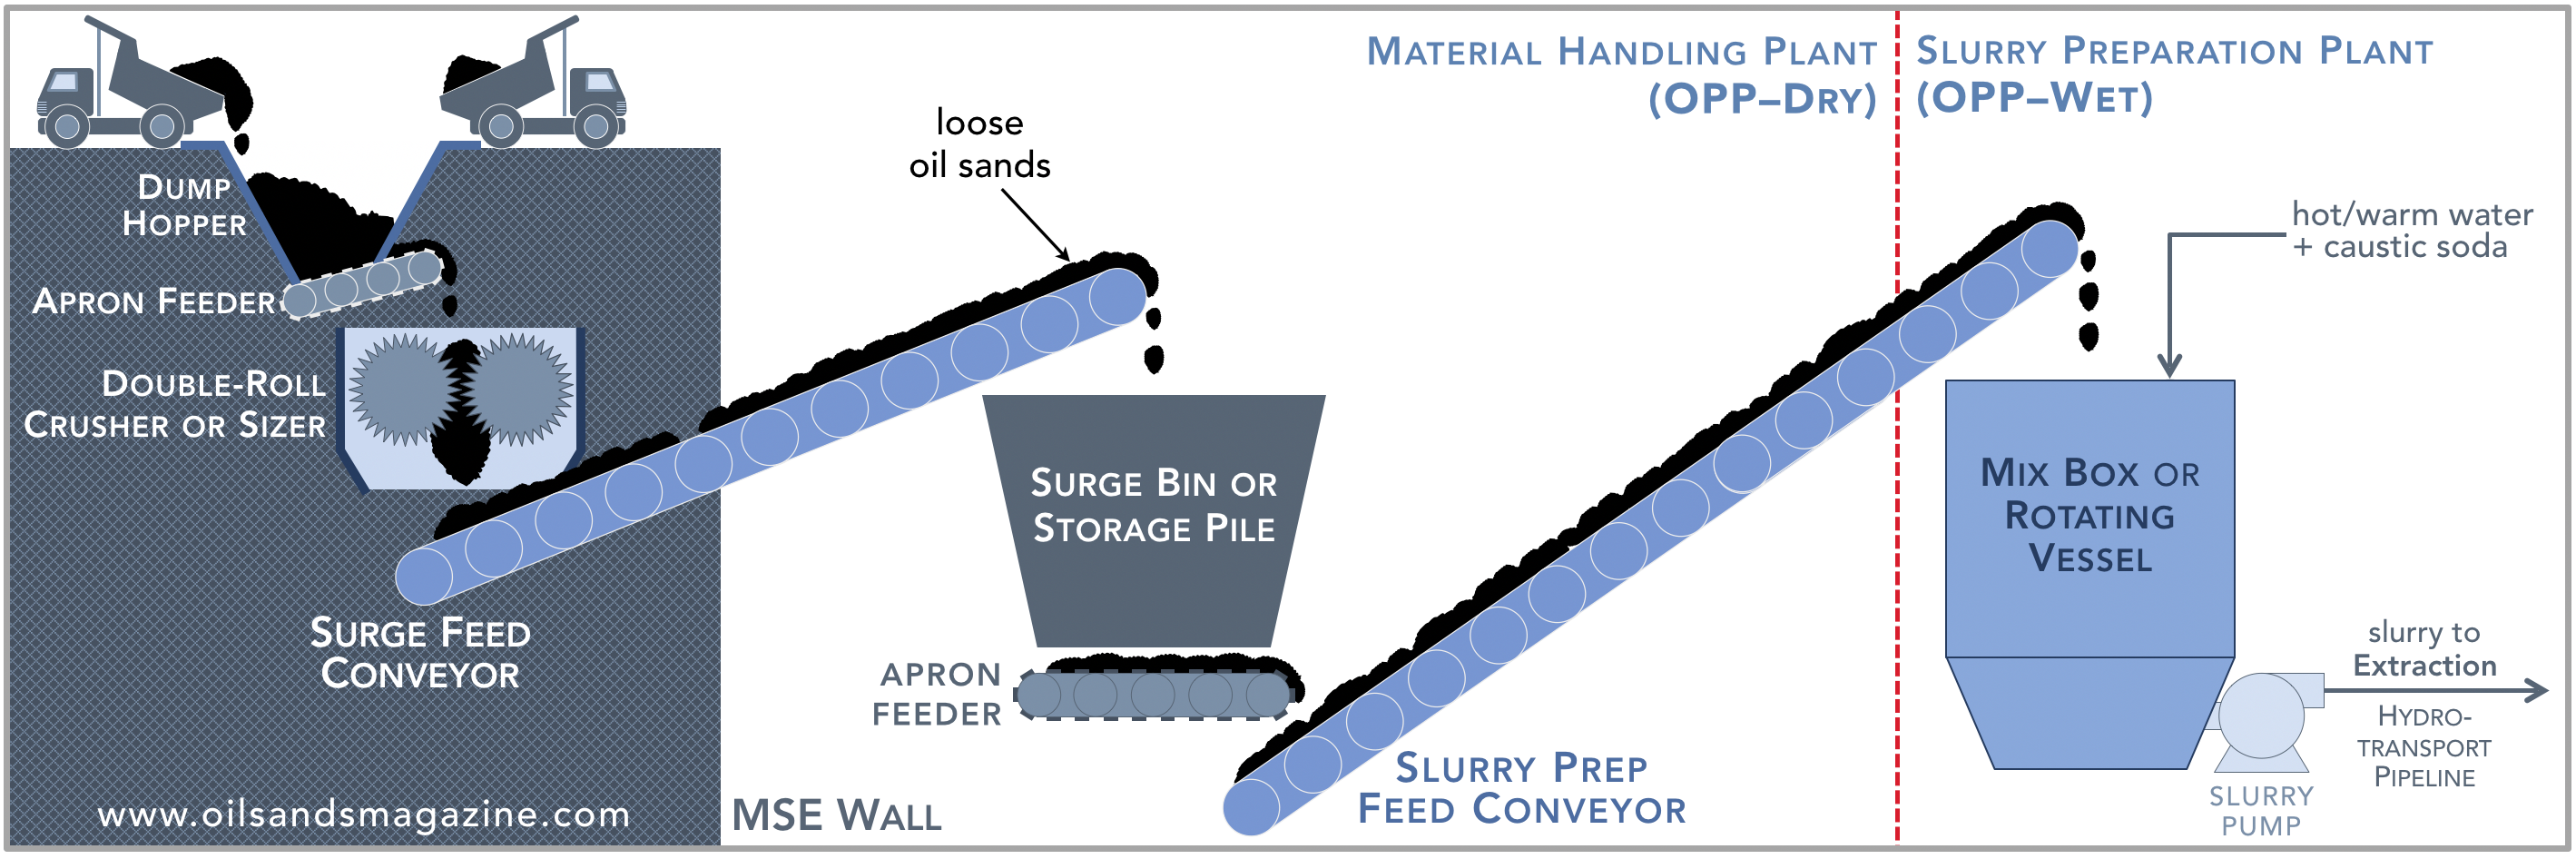 storage handling preparation of fuel oils essay 2) re-burning: natural gas can be added to coal or oil fired boilers to reduce nox  and so2 emissions  hydro levels, gas storage levels, oil prices, pipelines,  temperature,  us natural gas production by source, 1990-2025.